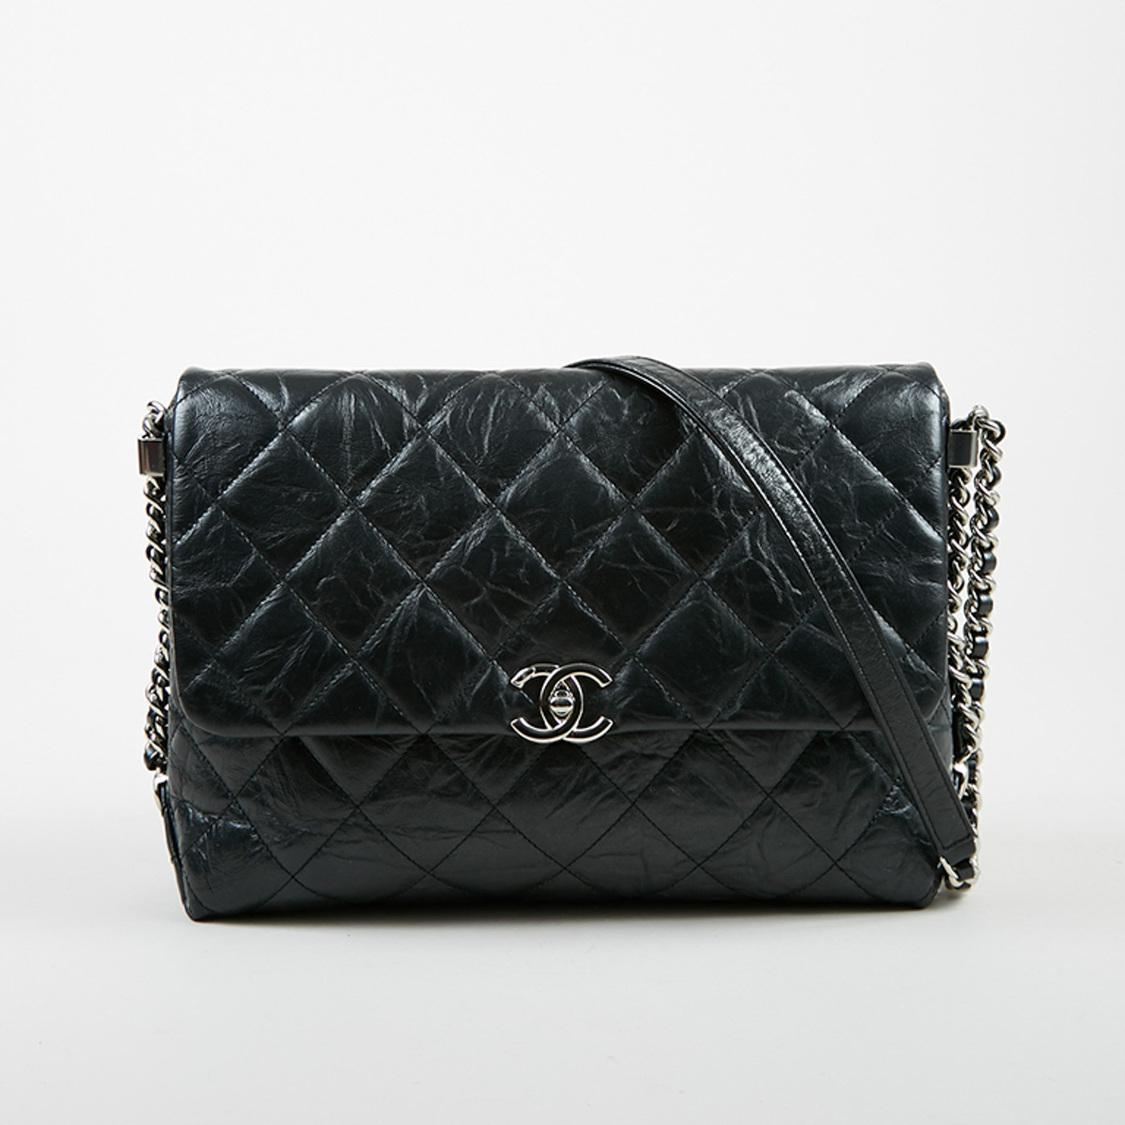 d0dc67e51c62 Chanel Black Quilted Aged Calfskin